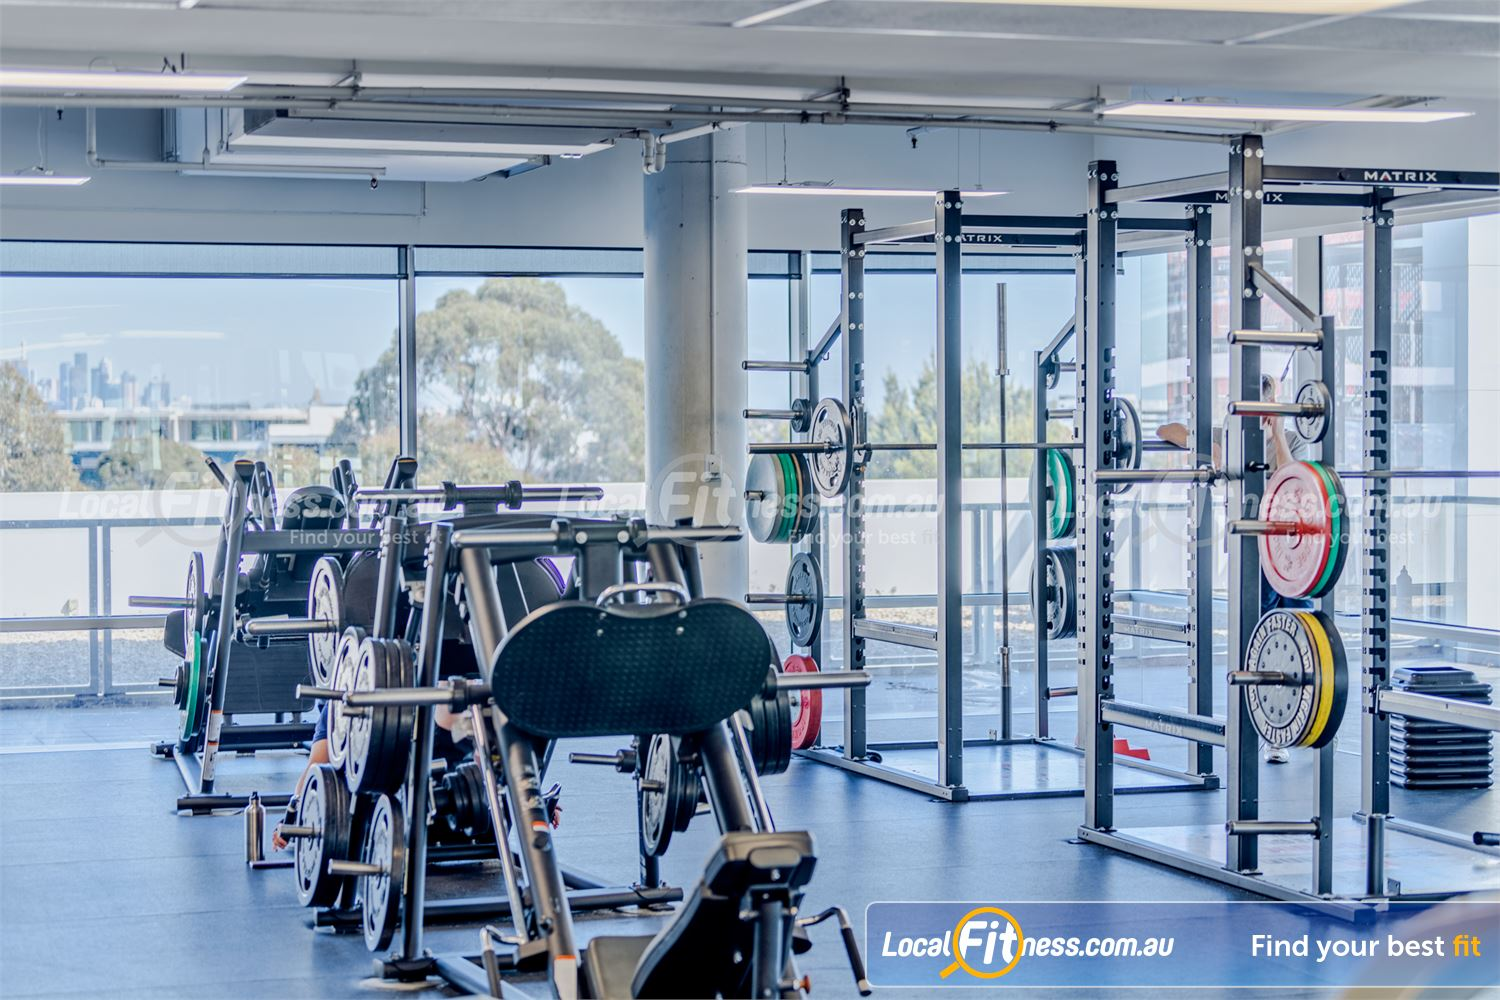 Goodlife Health Clubs Near Ashburton Full range of plate-loading machines including the leg press and hack squat.